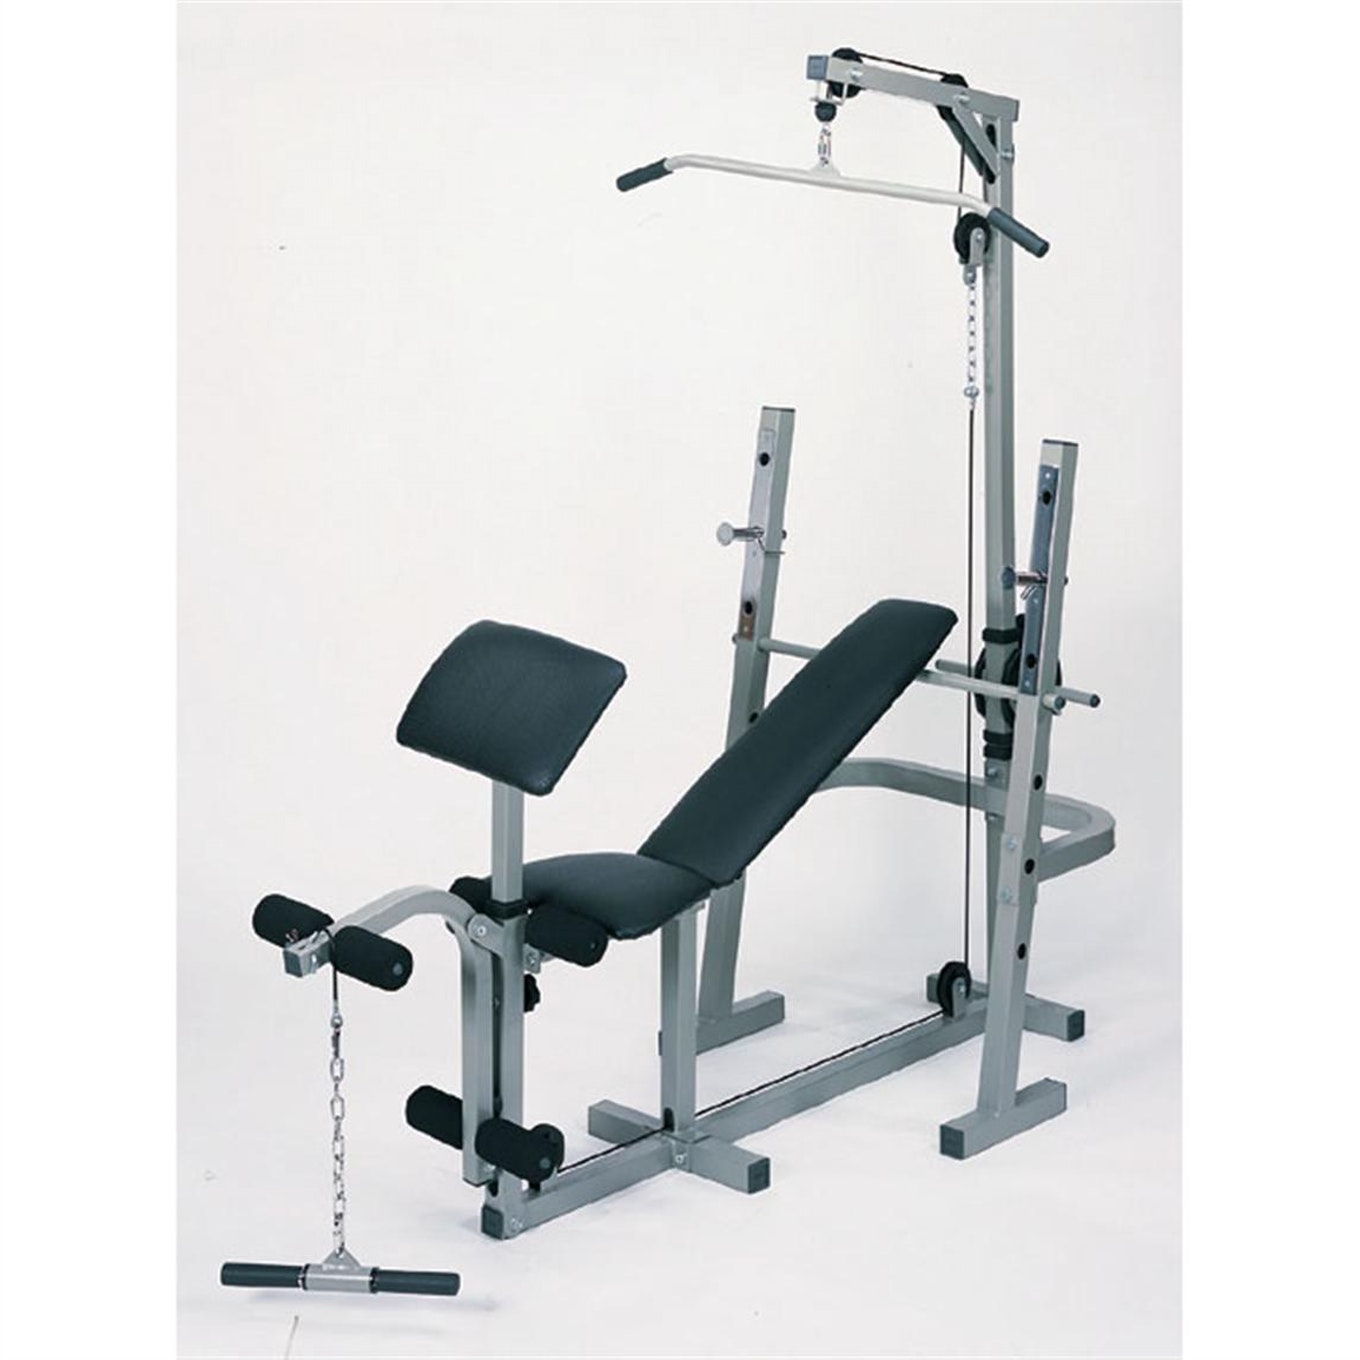 Tsa Weight Bench | Powerhouse Weight Bench | Used Weight Bench